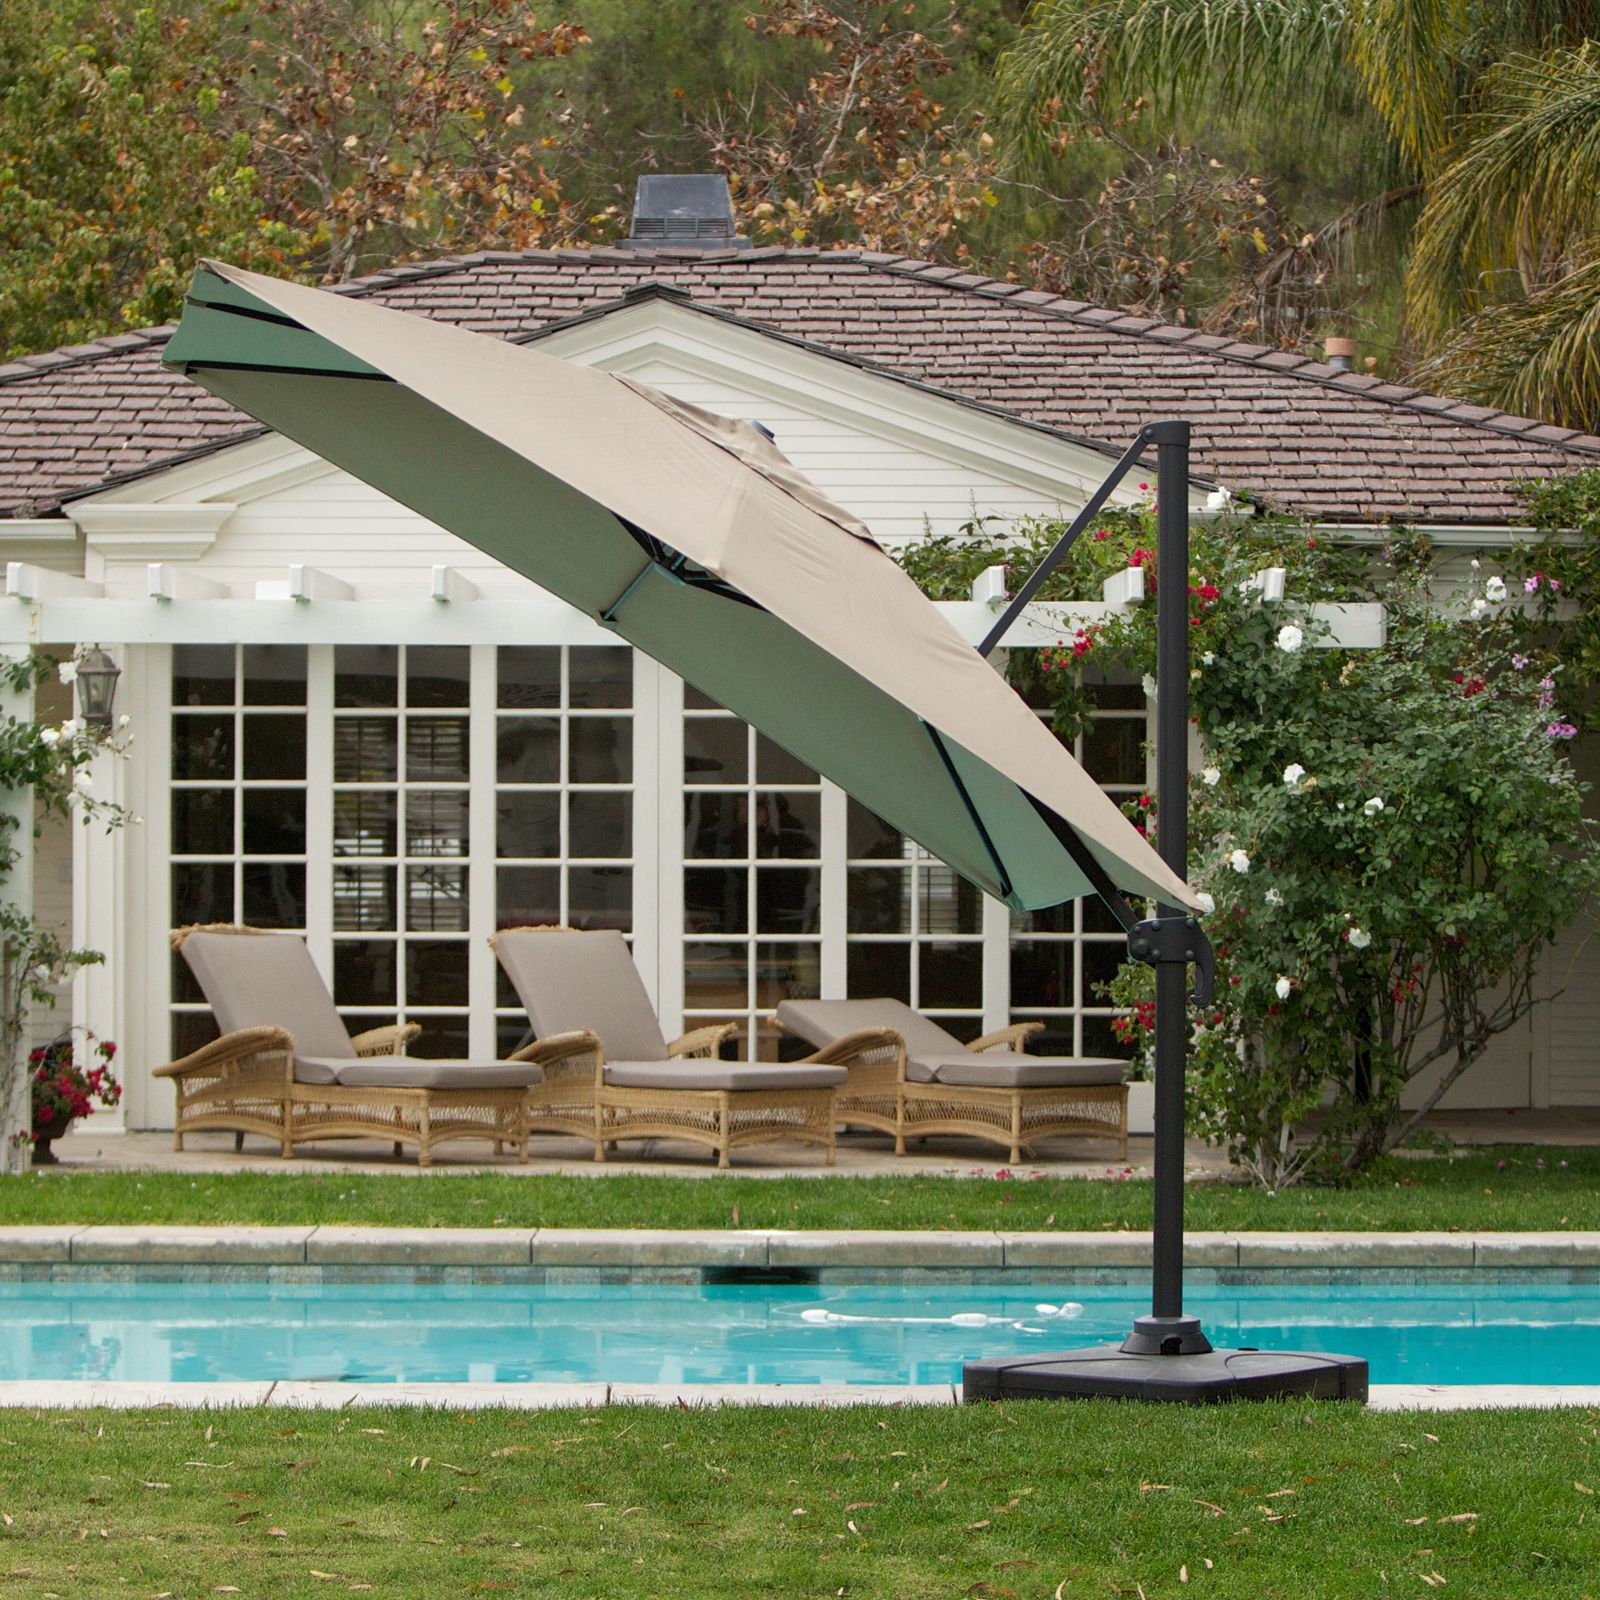 Best Selling Home Puebla 10 ft Cantilever f Set Patio Umbrella